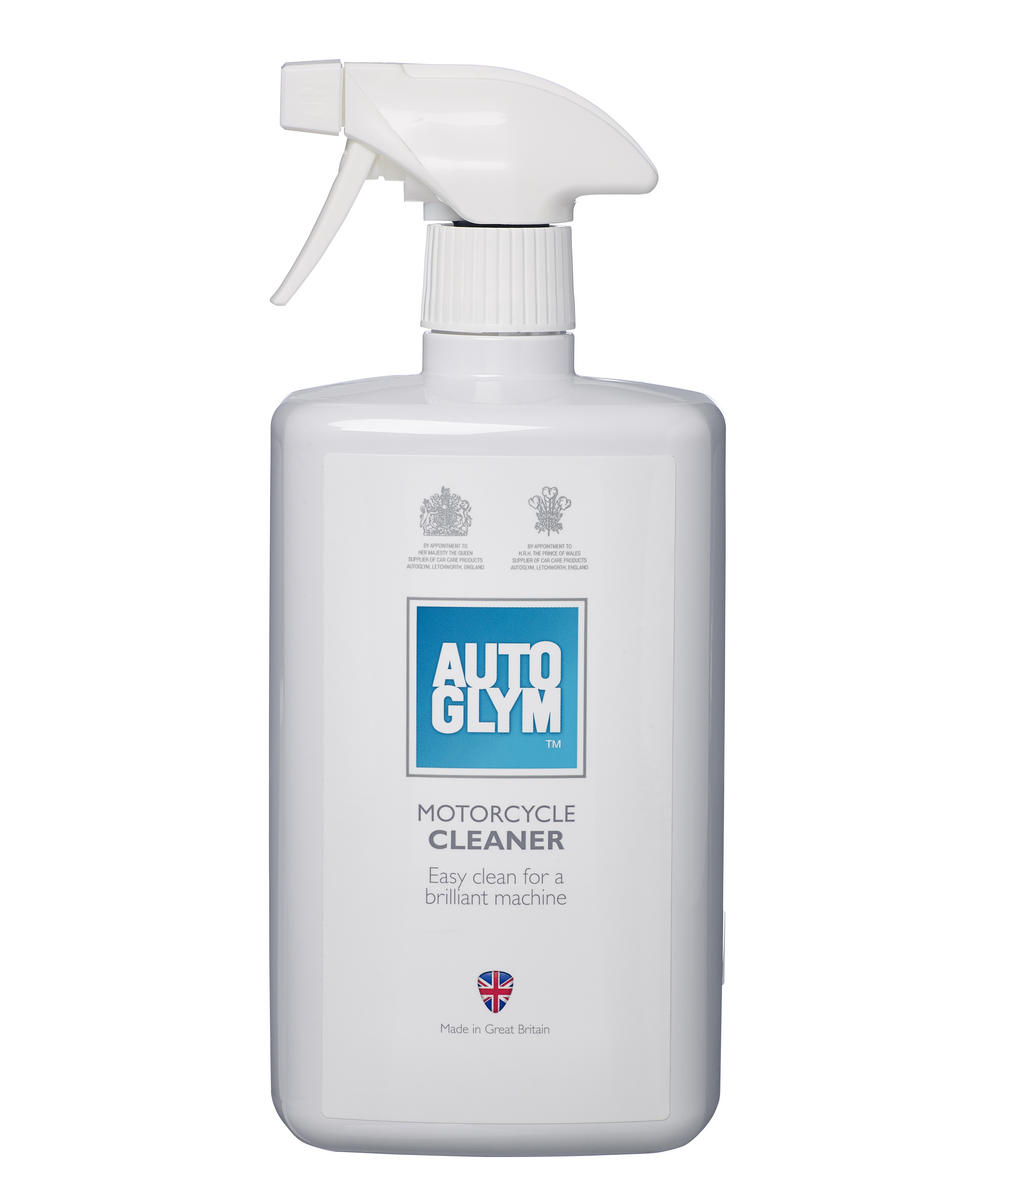 Autoglym mc001 Car Detailing Exterior Motorcycle Cleaner 1 Litre